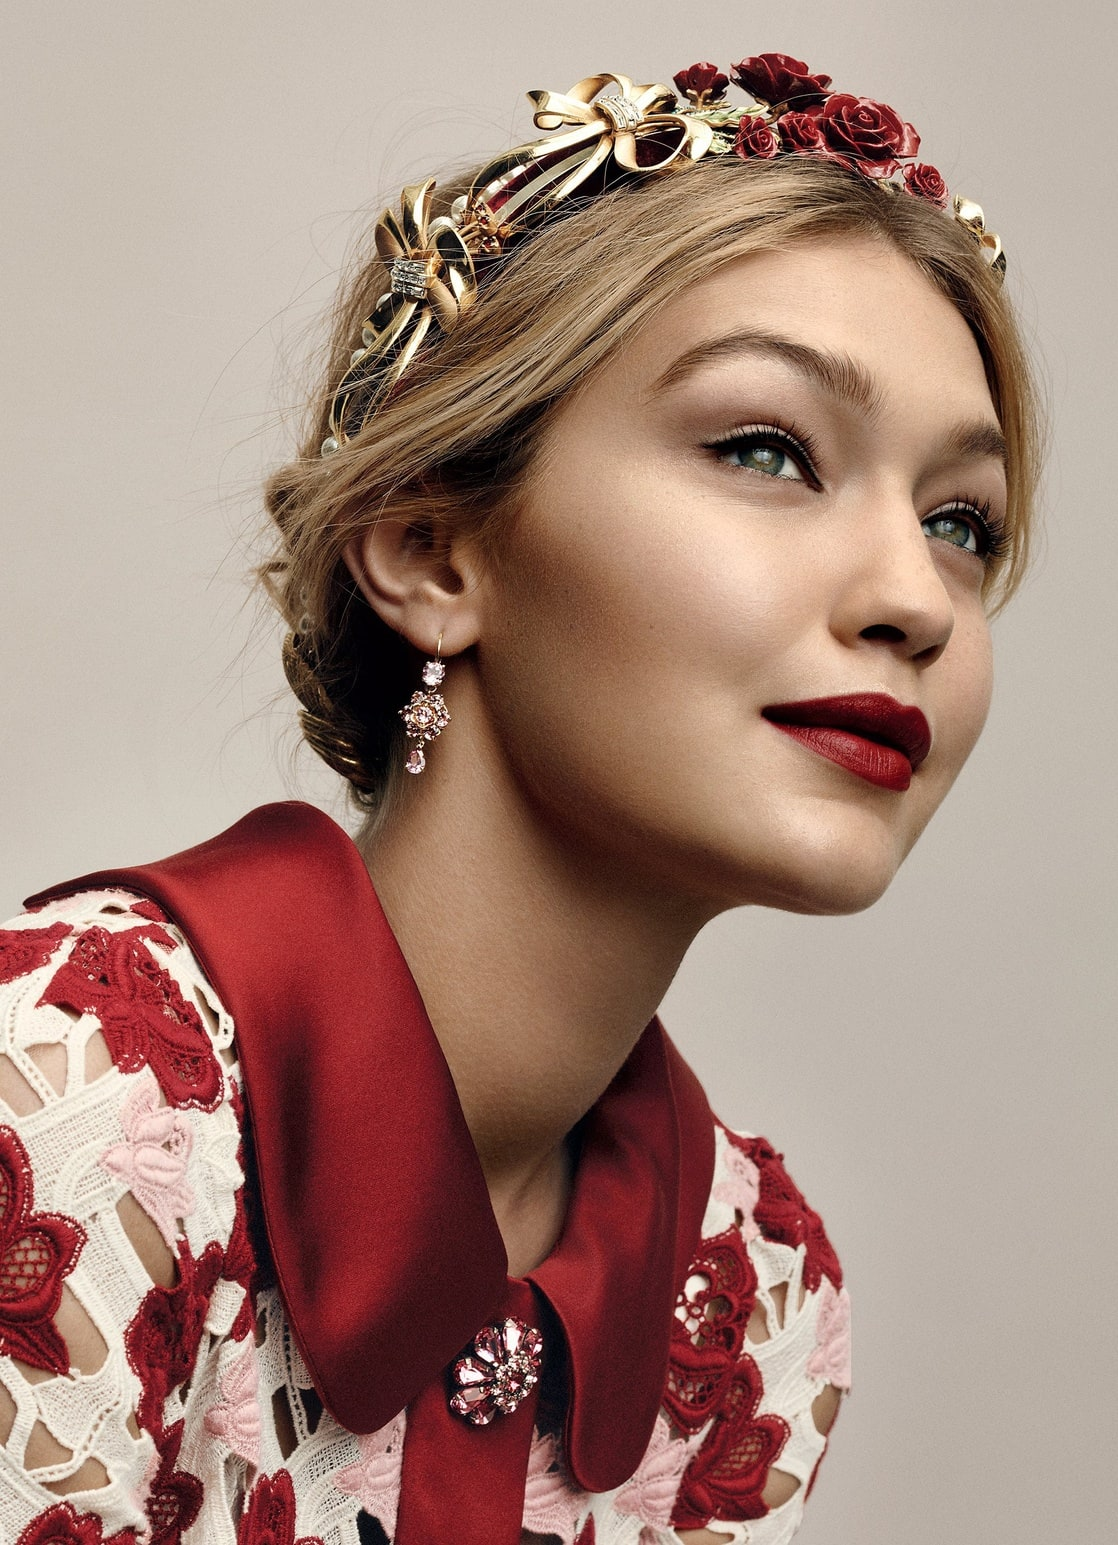 gigi hadid - photo #40